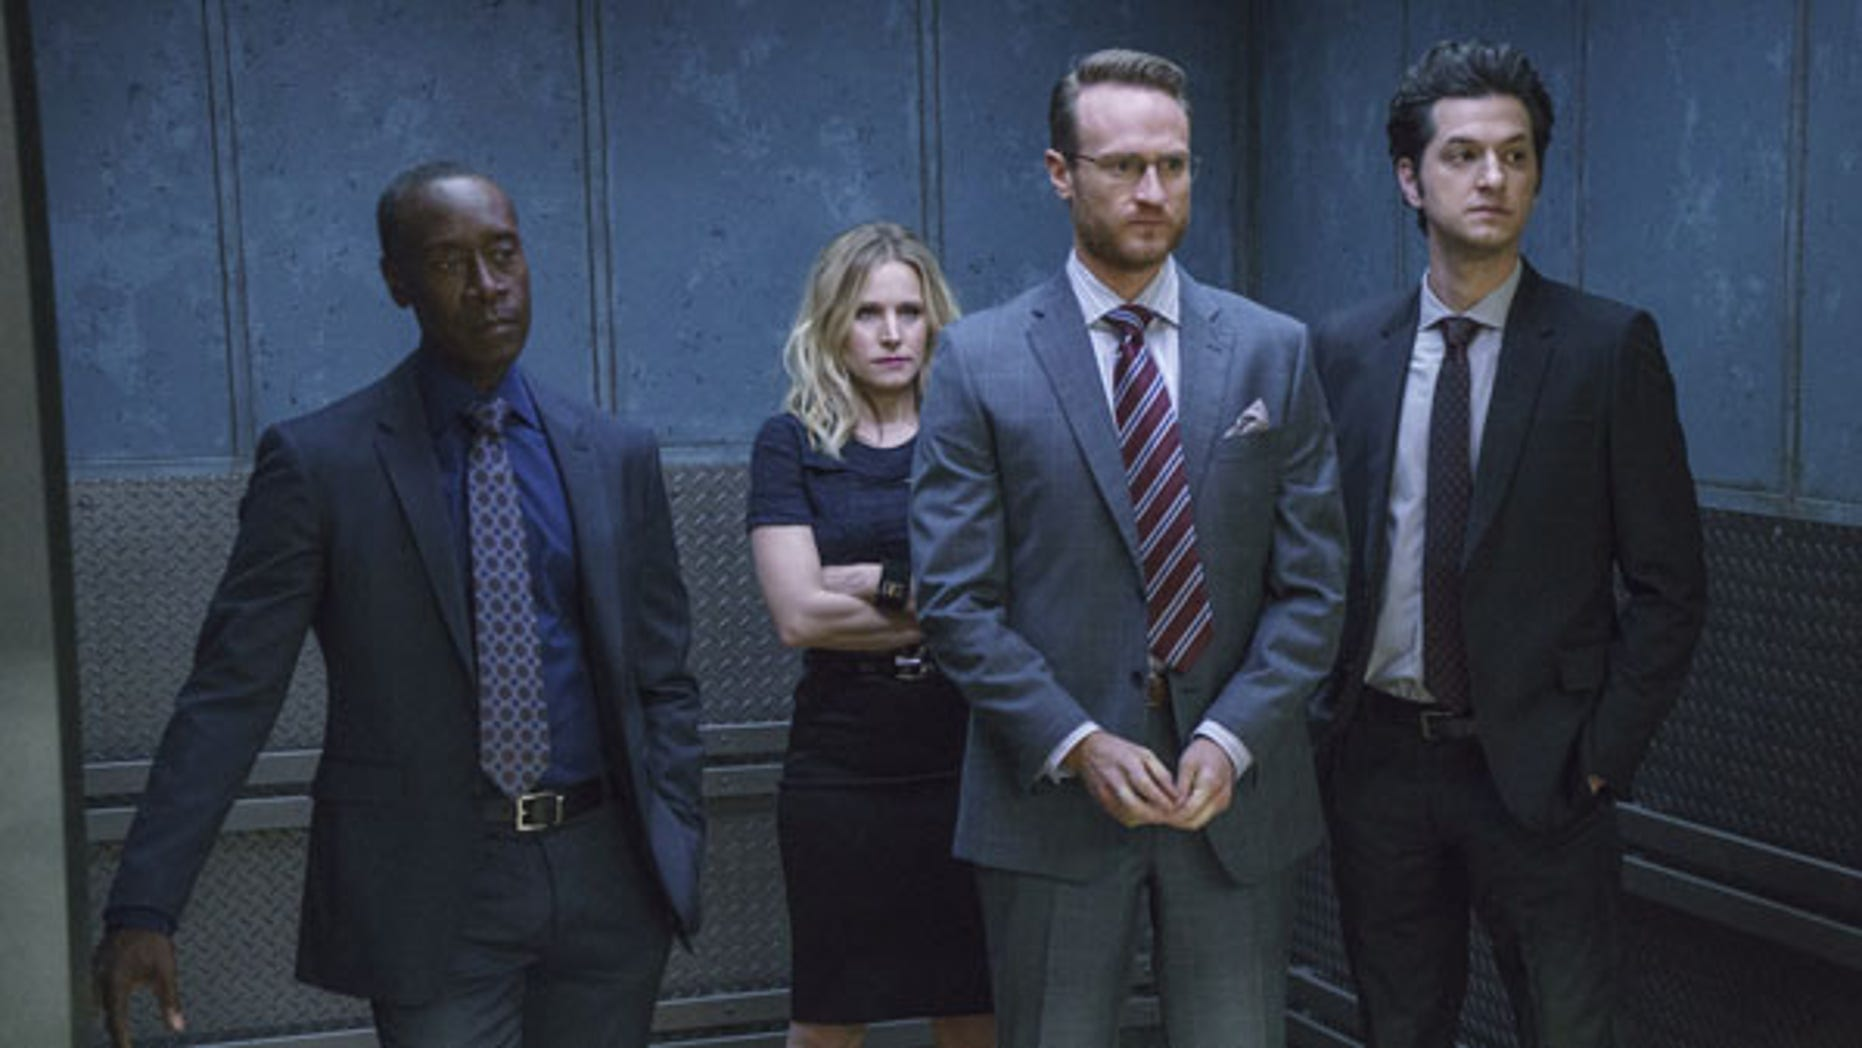 "In this image released by Showtime, Don Cheadle as Marty Kaan, from left, Kristen Bell as Jeannie Van Der Hooven, Ben Schwartz as Clyde Oberholt and Josh Lawson as Doug Guggenheim appear in a scene from, ""House of Lies."" The Showtime comedy is wrapping its five-season run with a finale filmed entirely on location in Havana. The episode, titled âNo Es Facil,â premieres June 13. (Michael Desmond/Showtime via AP)"